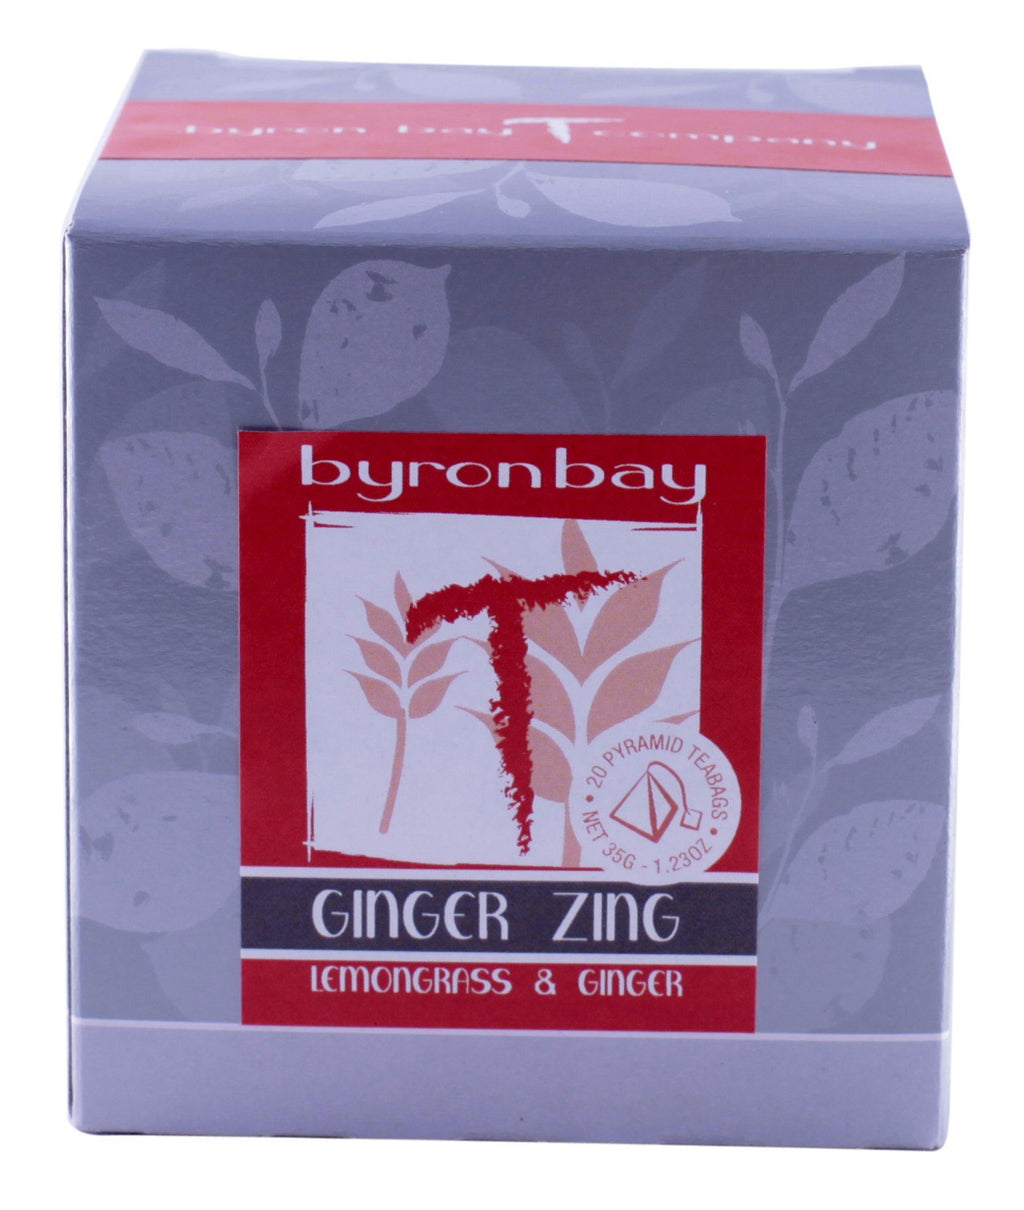 Ginger Zing TEABAG Box Retail Other Old Stock Default Title